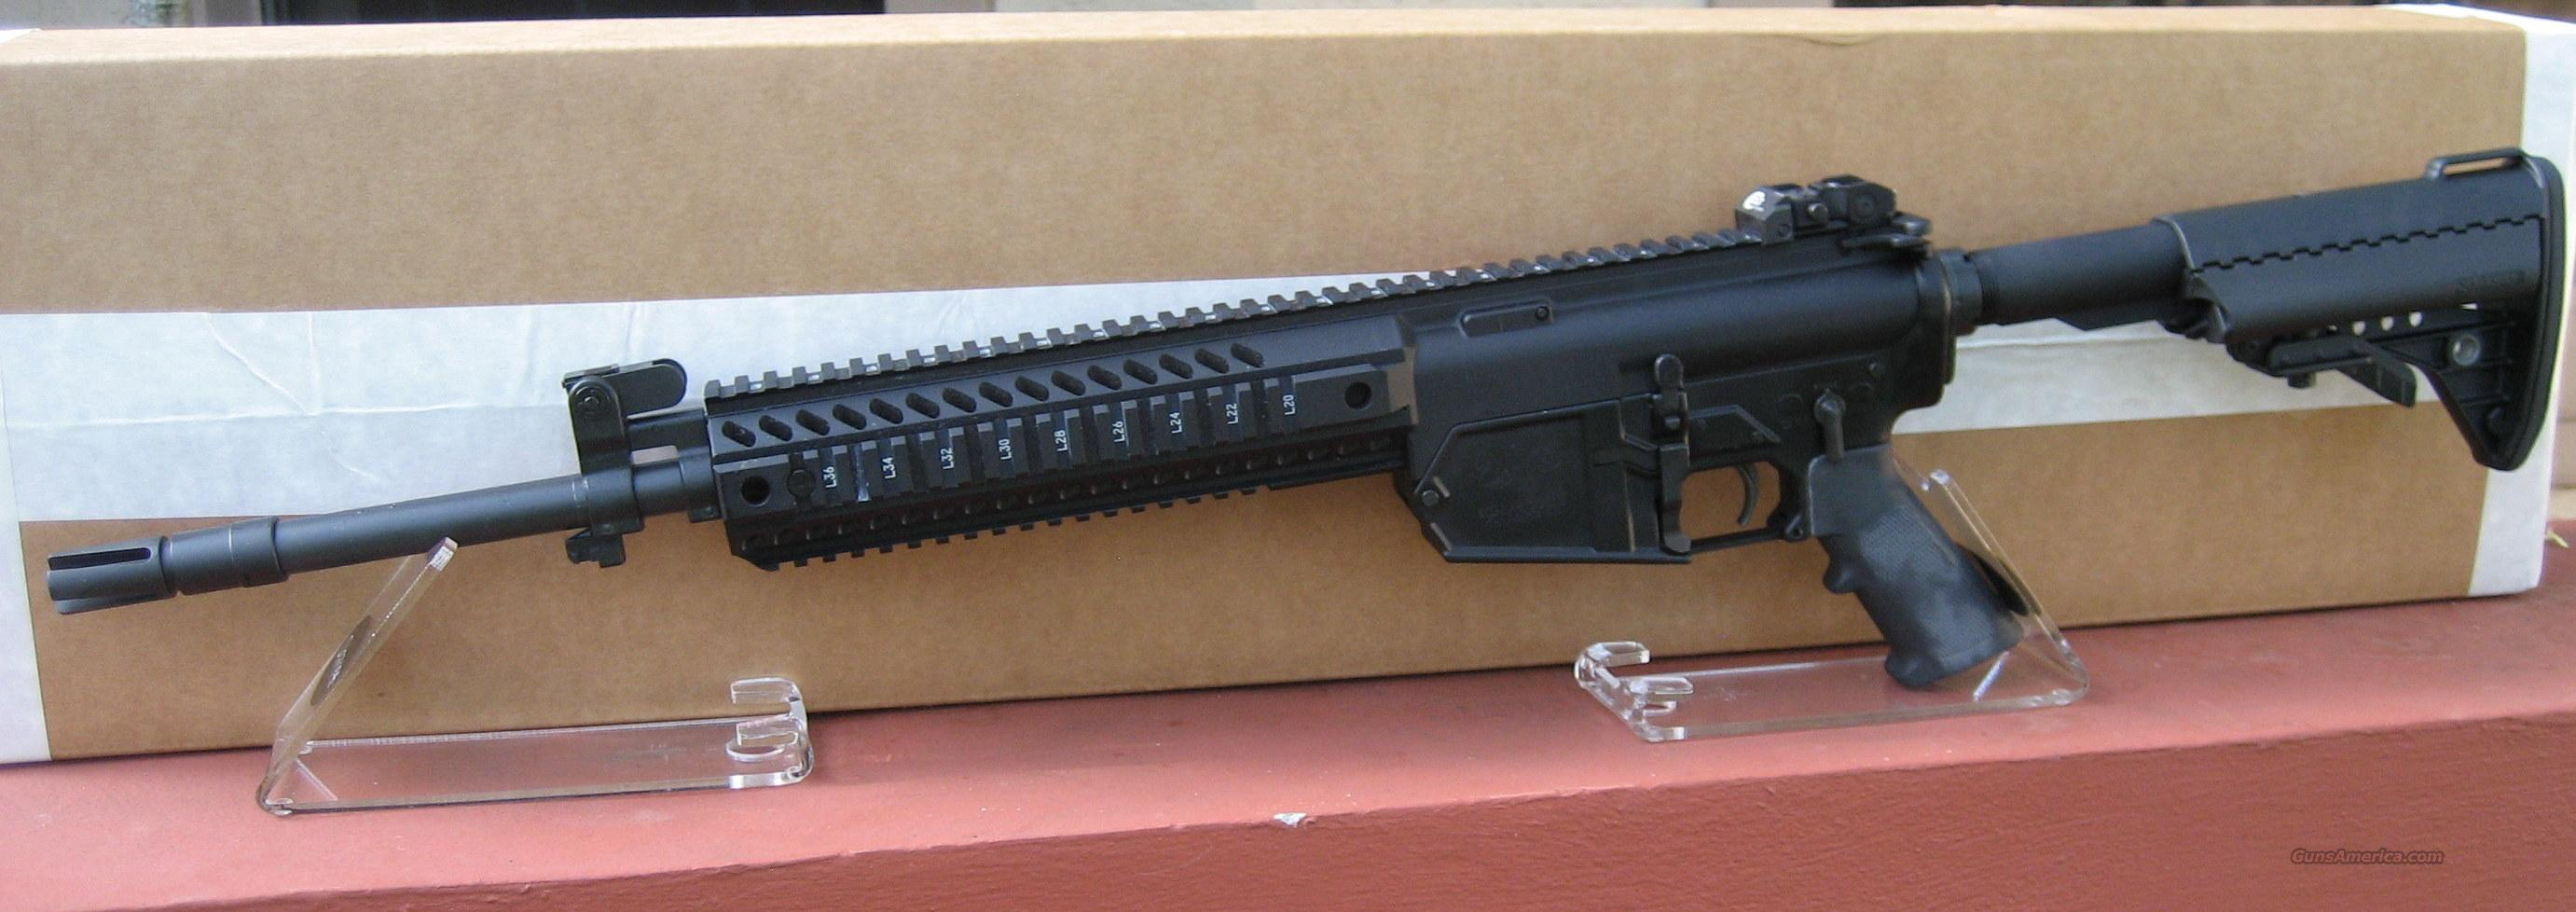 COLT AR CARBINE LE901-16S 308 WIN W/ CONVERSION KIT  Guns > Rifles > Colt Military/Tactical Rifles